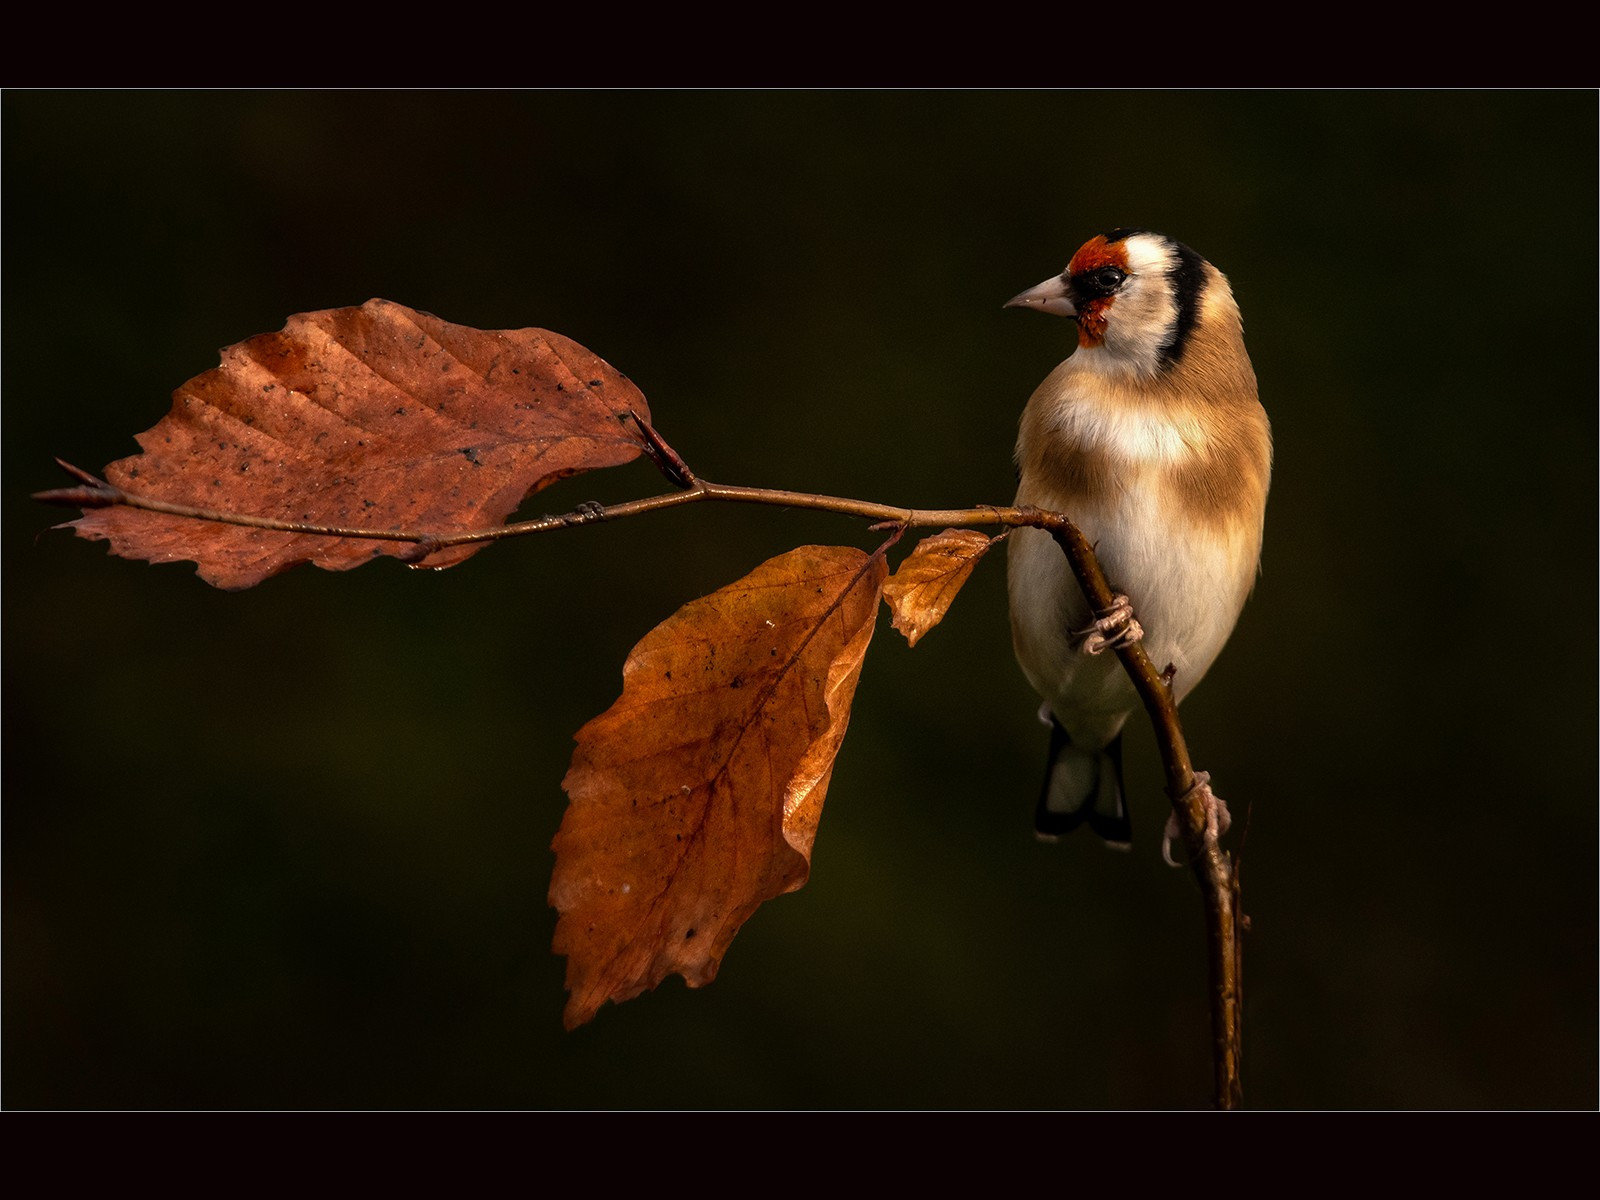 Early morning light on an Autumnal Goldfinch